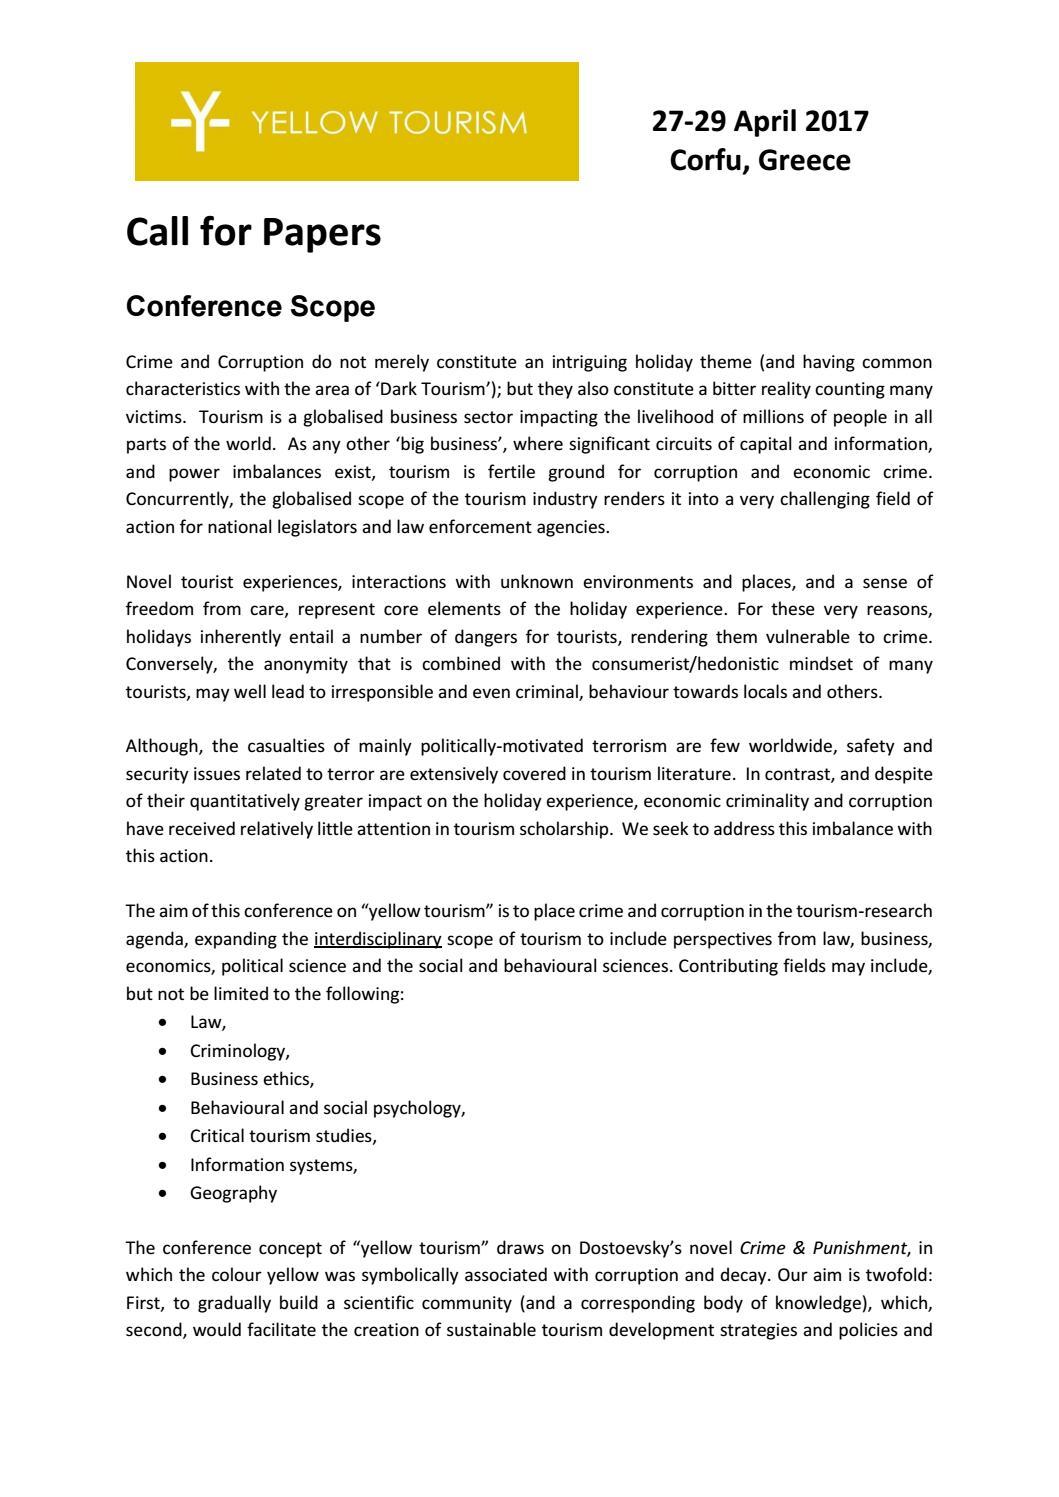 Yellow Tourism Conference 2017- Call for papers by Xristina Tina